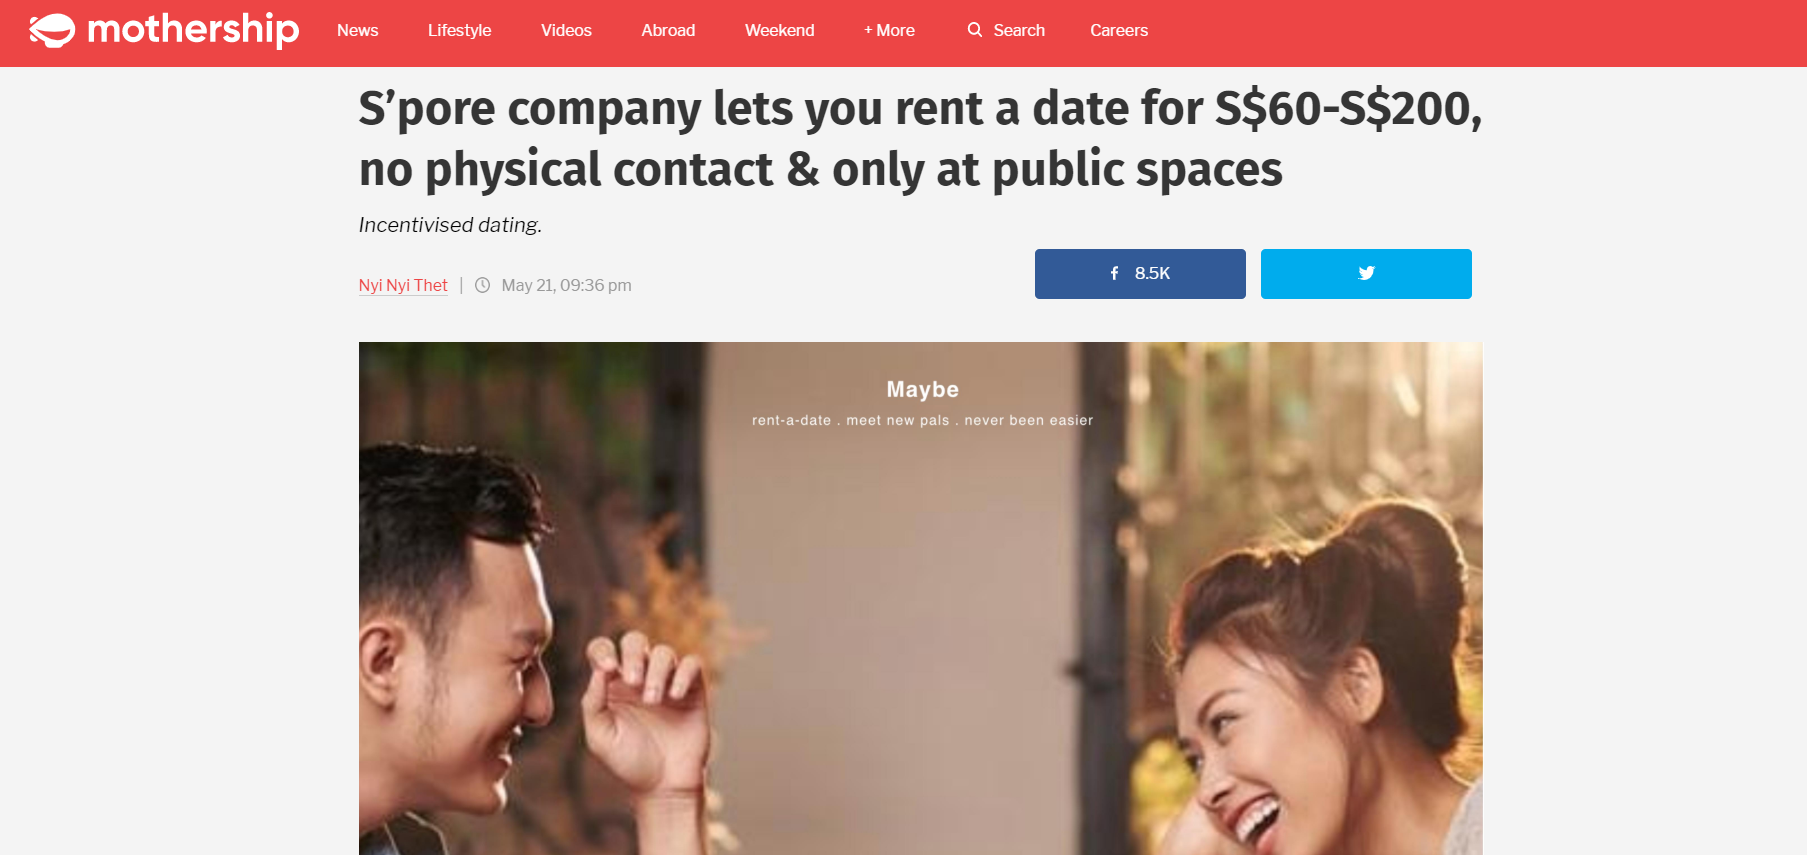 S'pore company lets you rent a date for S$60-S$200, no physical contact & only at public spaces